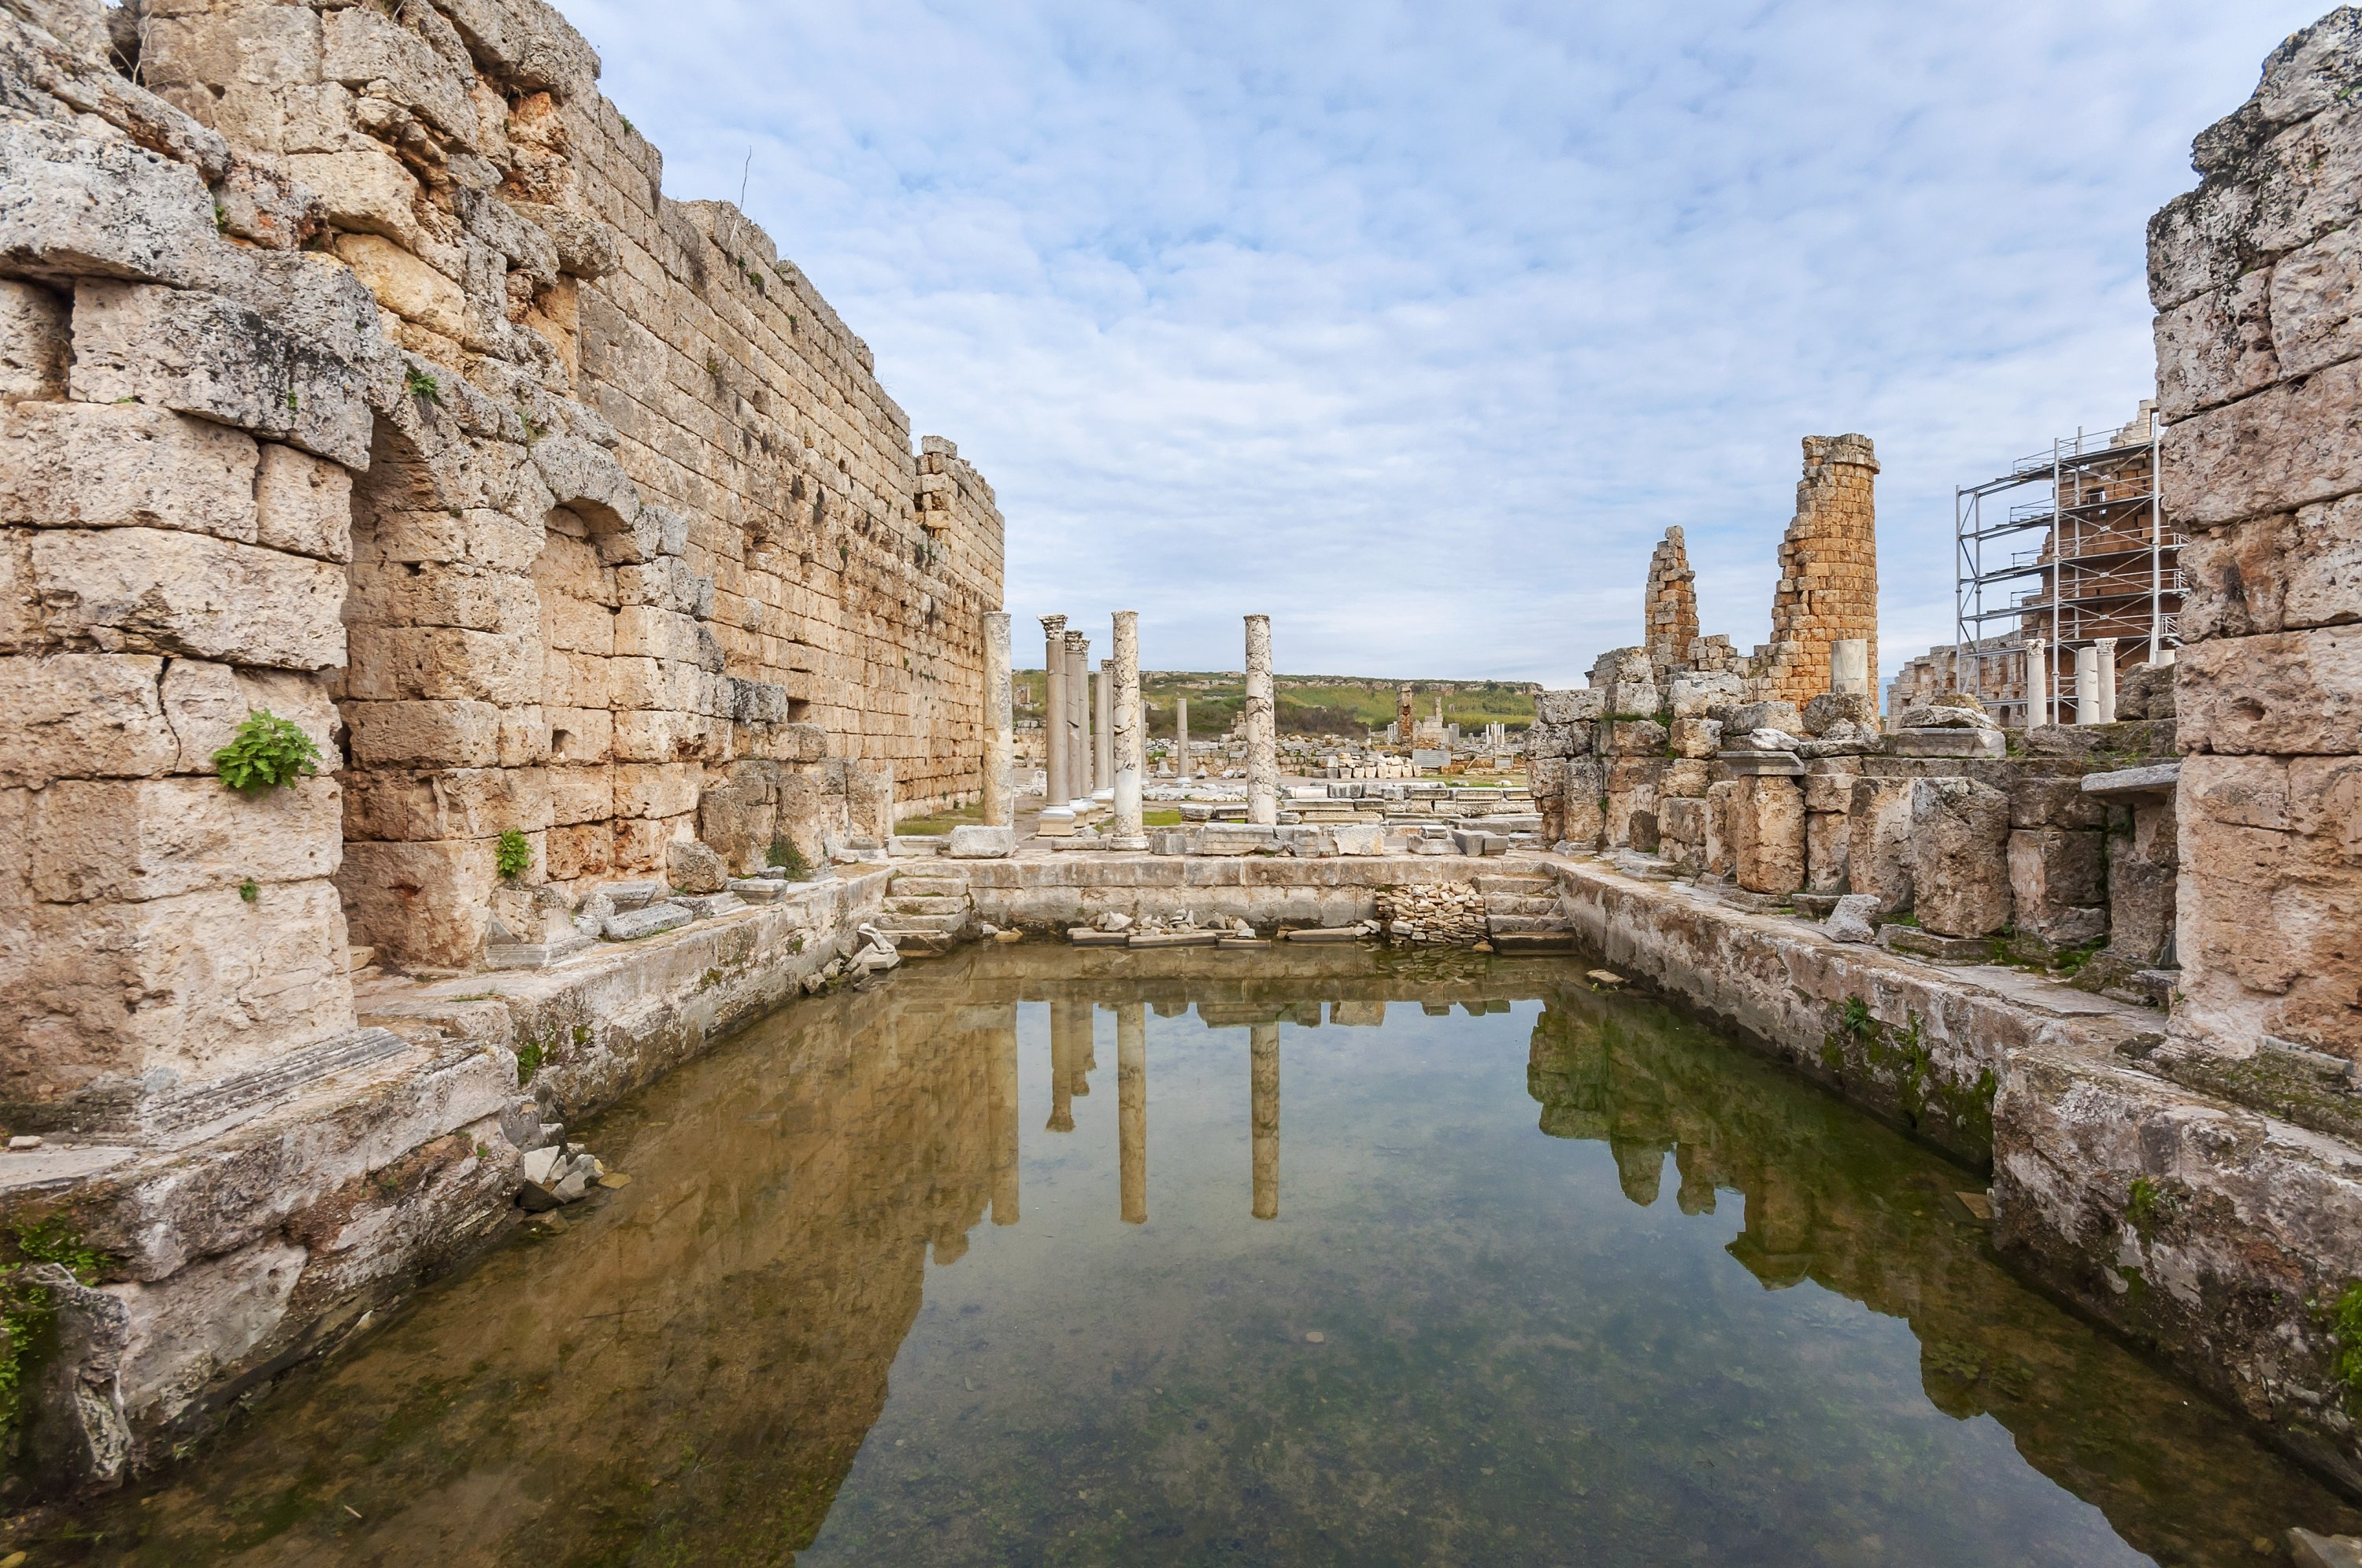 A view of Roman baths in Perge Ancient City, Antalya, southern Turkey.  (Shutterstock Photo)